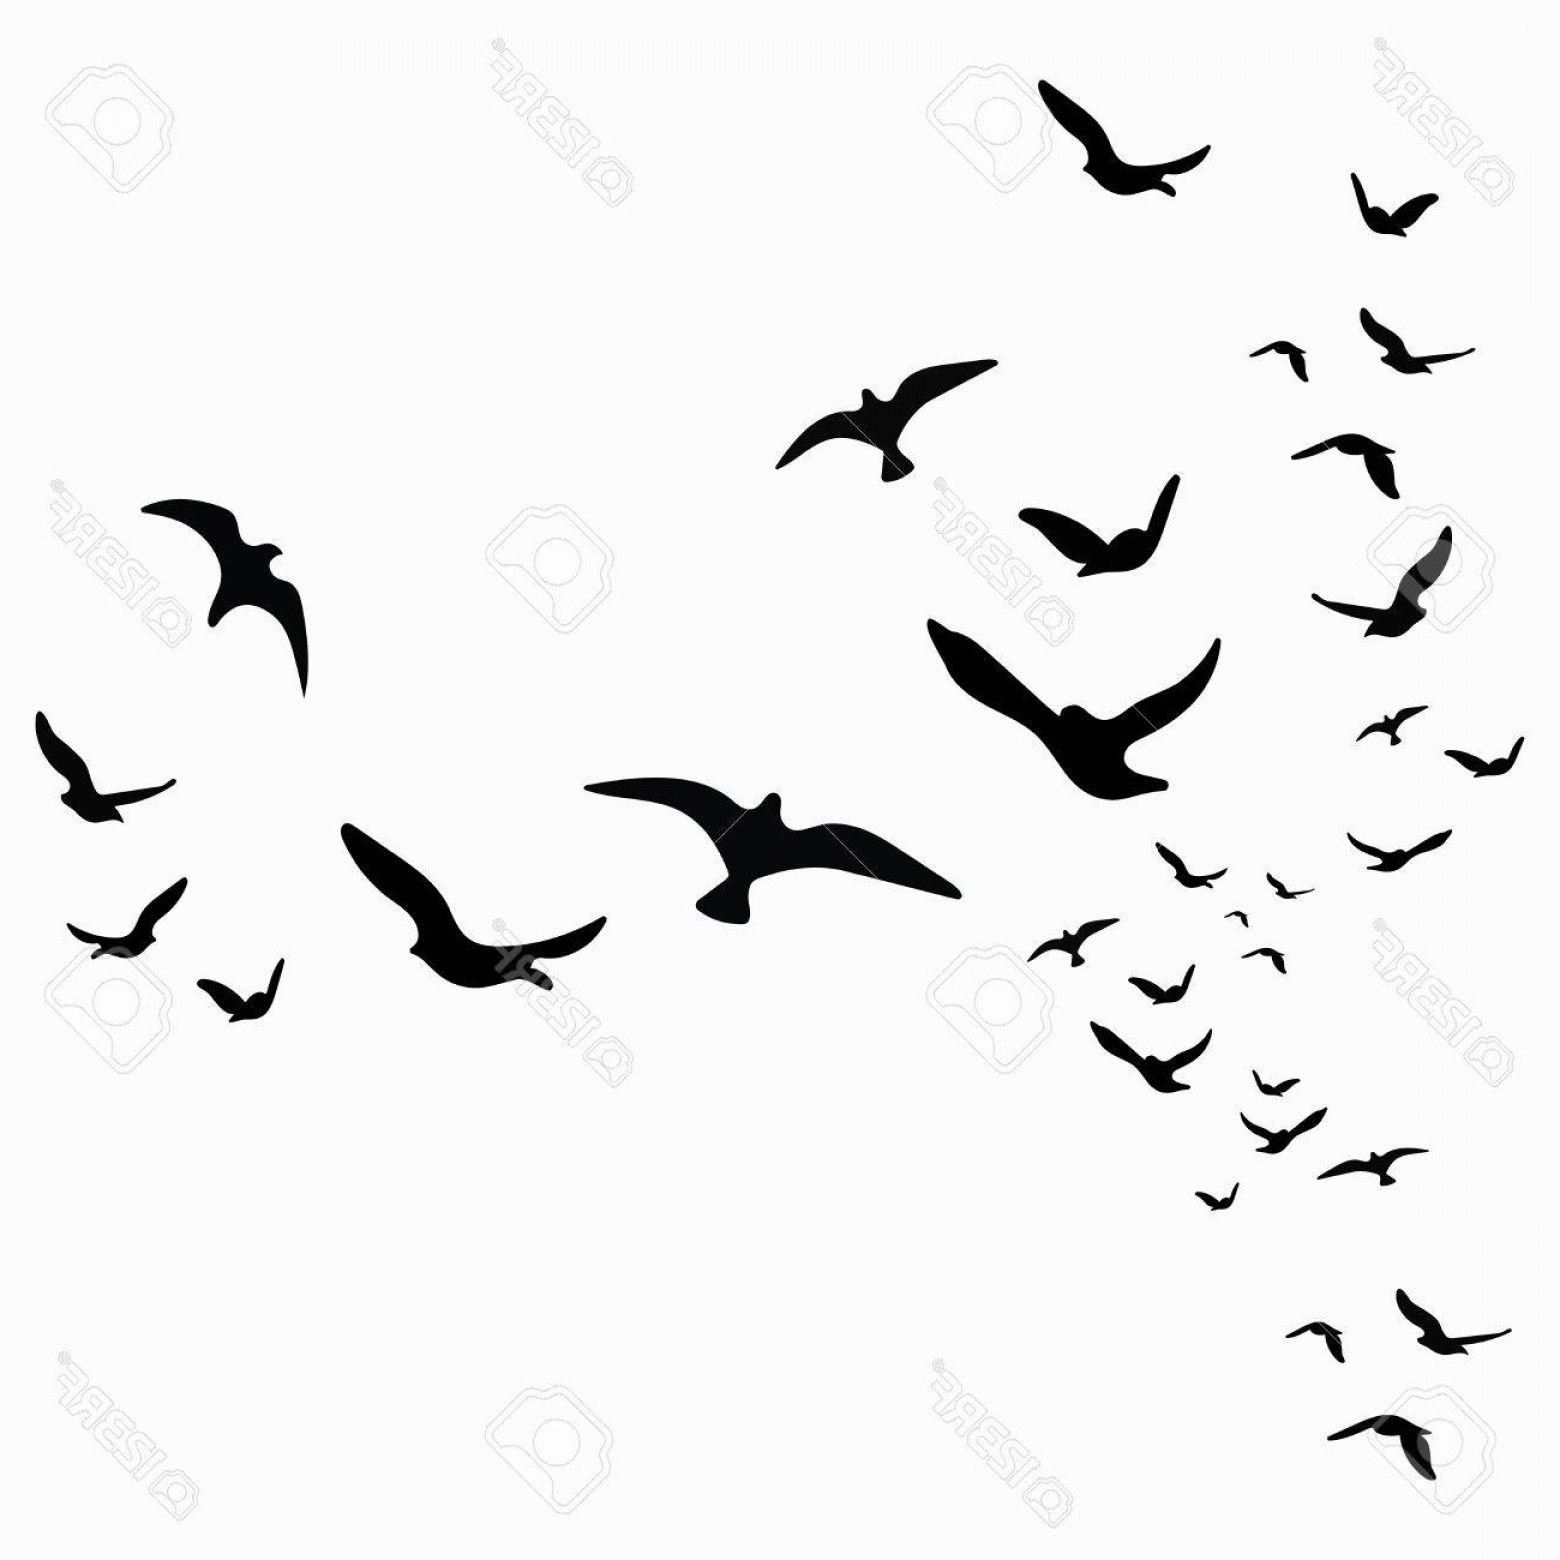 Bird Flying Vector Art: Photostock Vector Silhouette Of A Flock Of Birds Black Contours Of Flying Birds Flying Pigeons Tattoo Isolated Objects